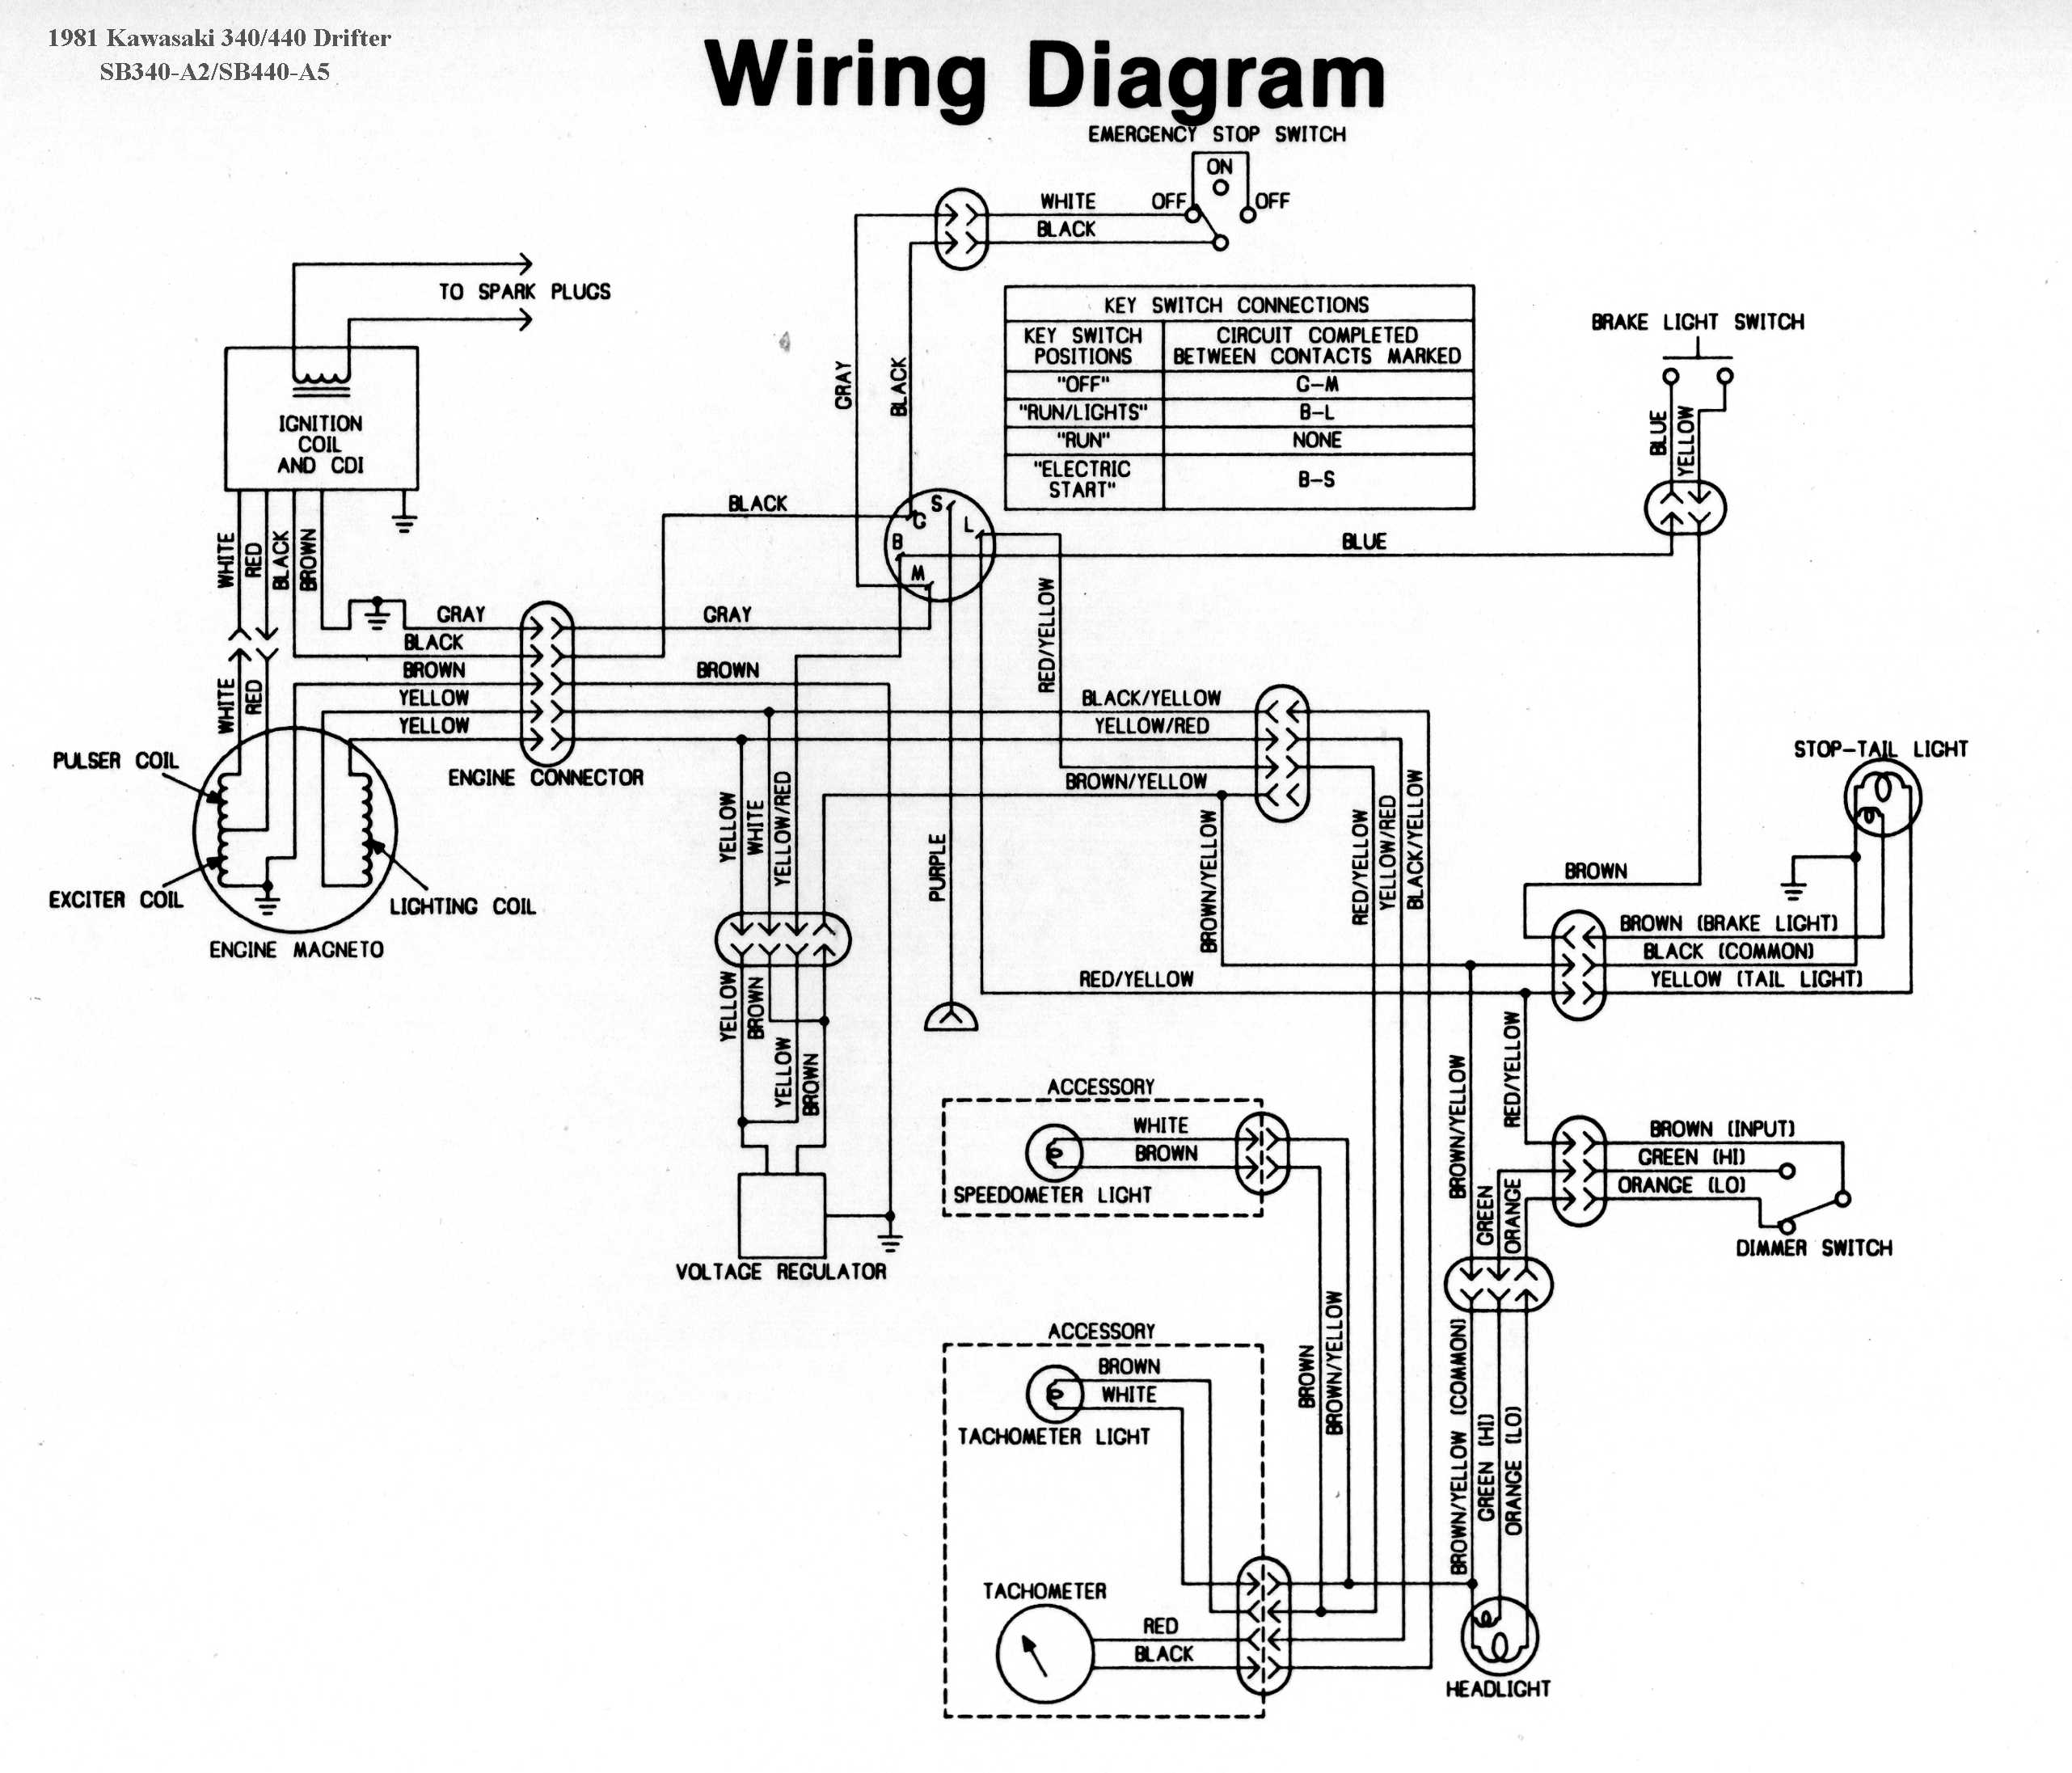 [WLLP_2054]   DC0400D 82 Chevy Truck Fuse Box | Digital Resources | Light Switch Wiring Diagram 1981 C10 |  | Find Digital Datasheets Resources